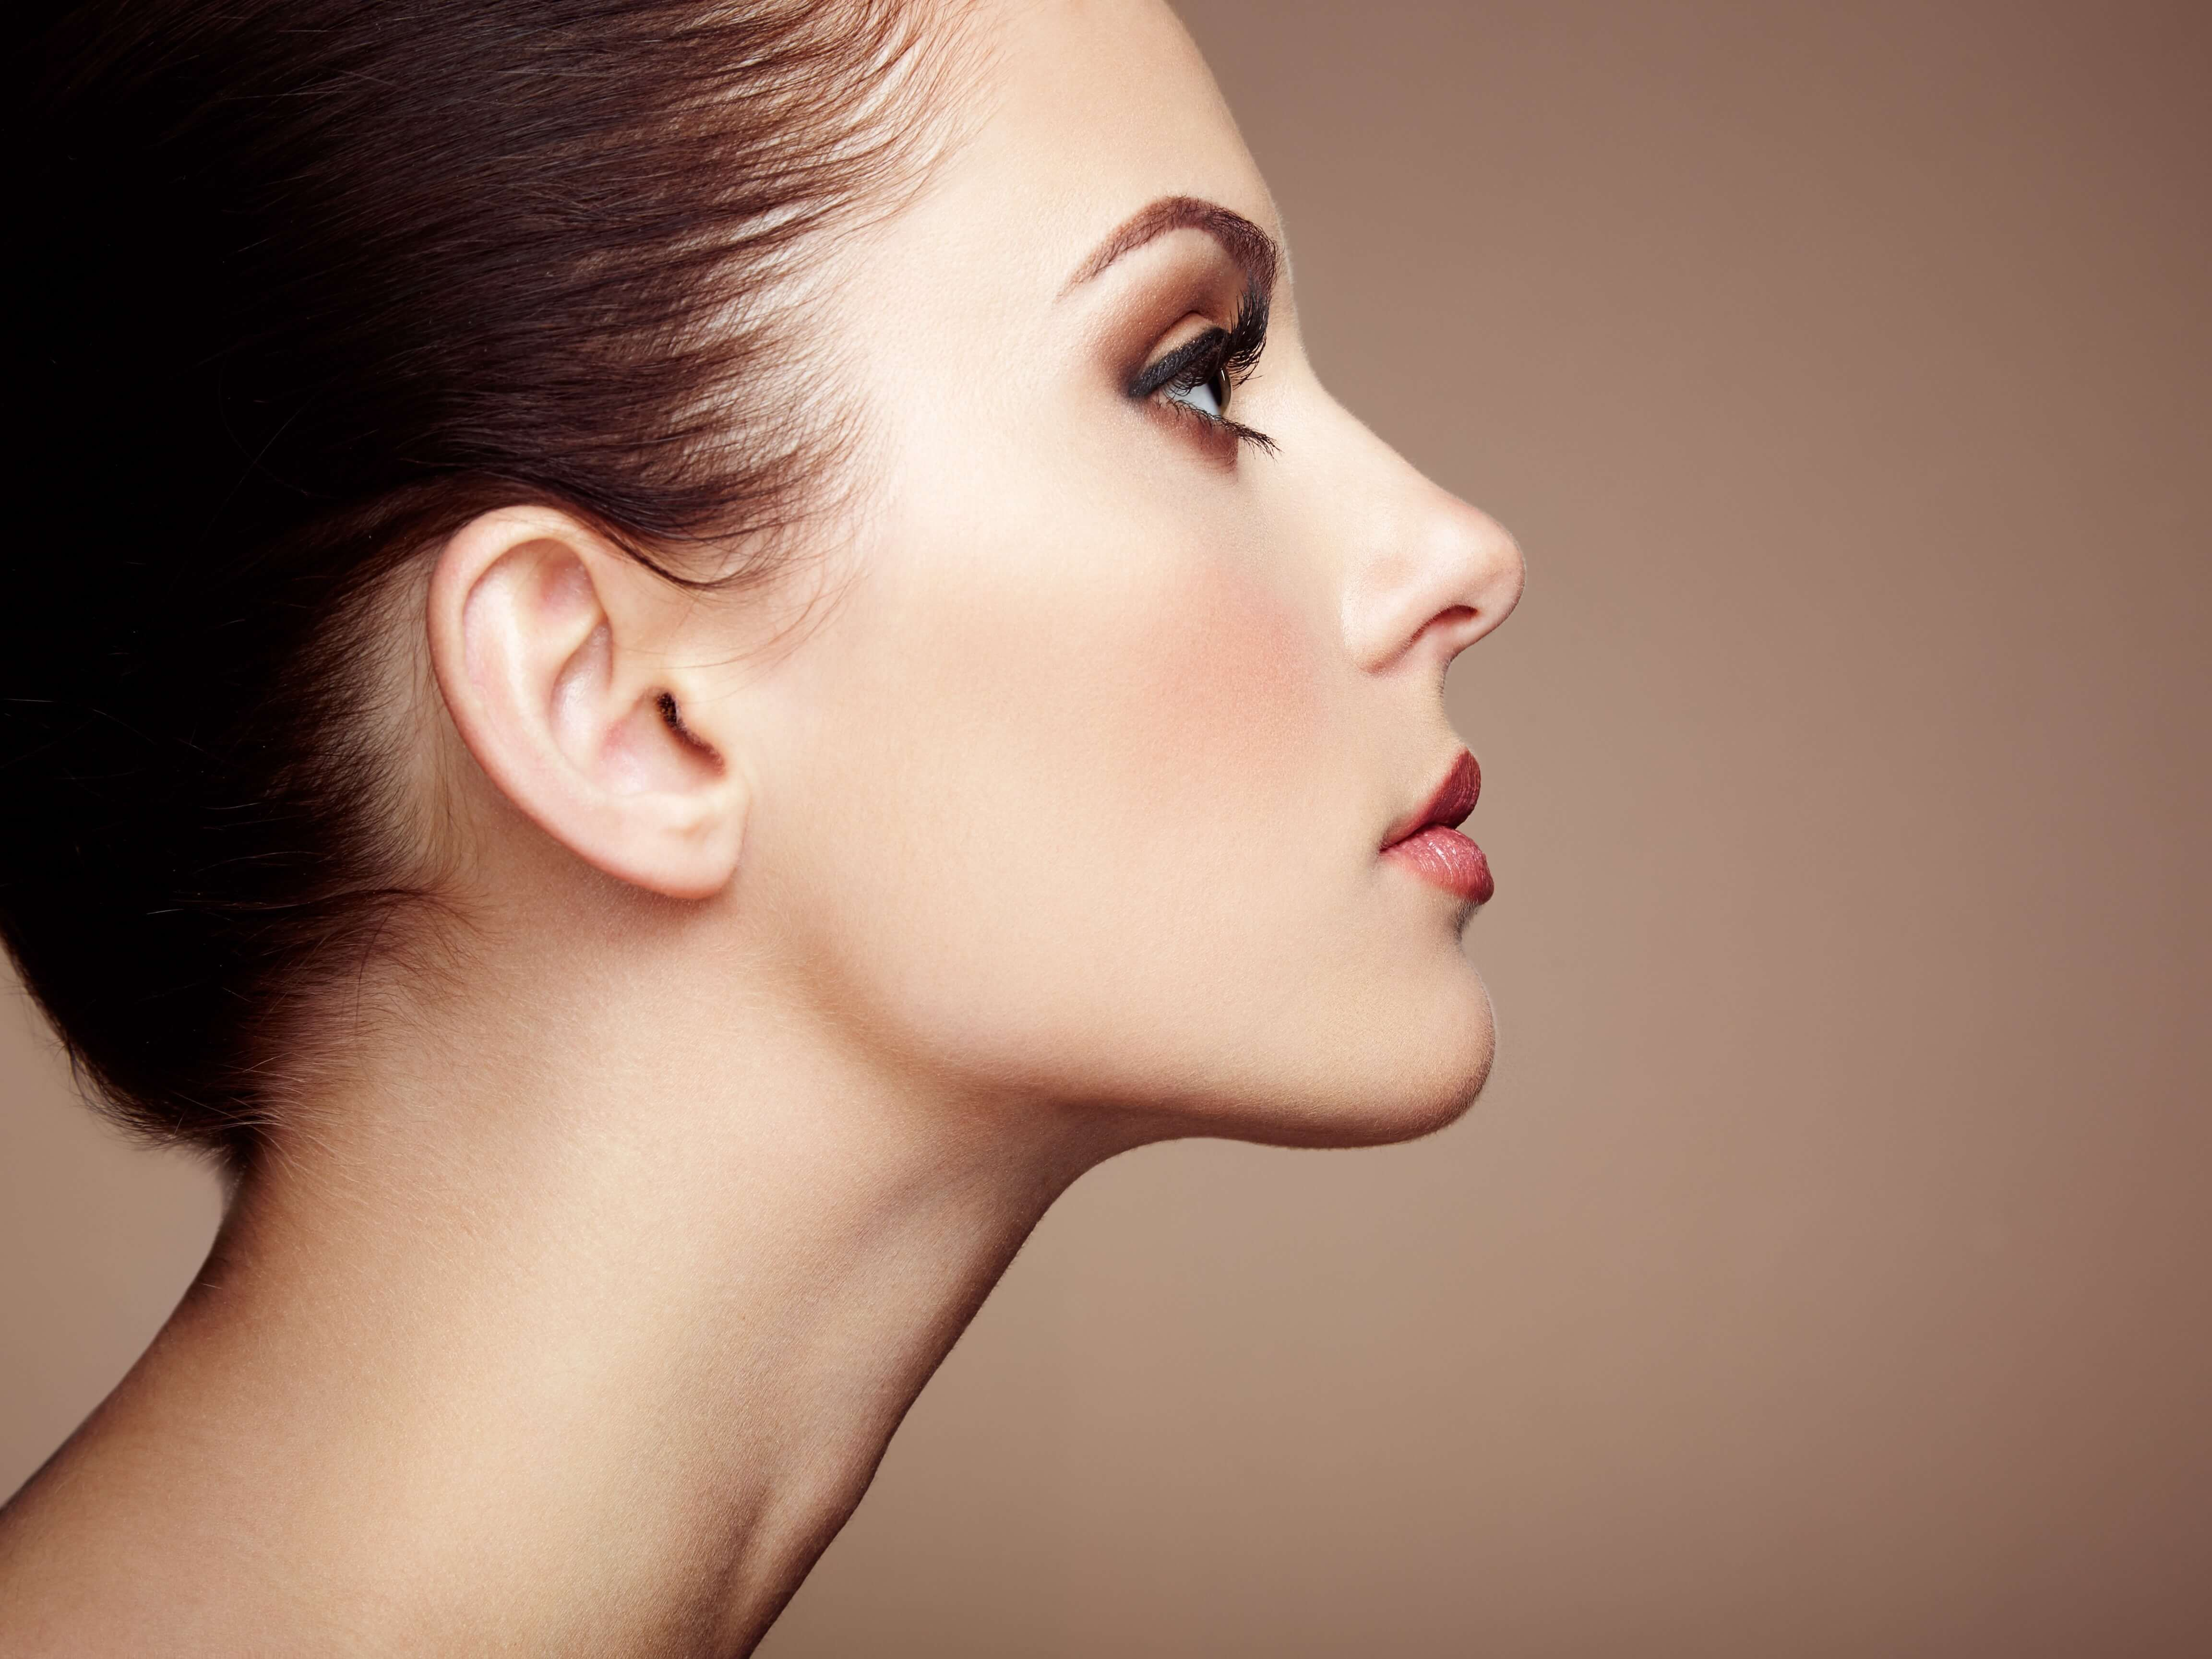 Woman with neck up.